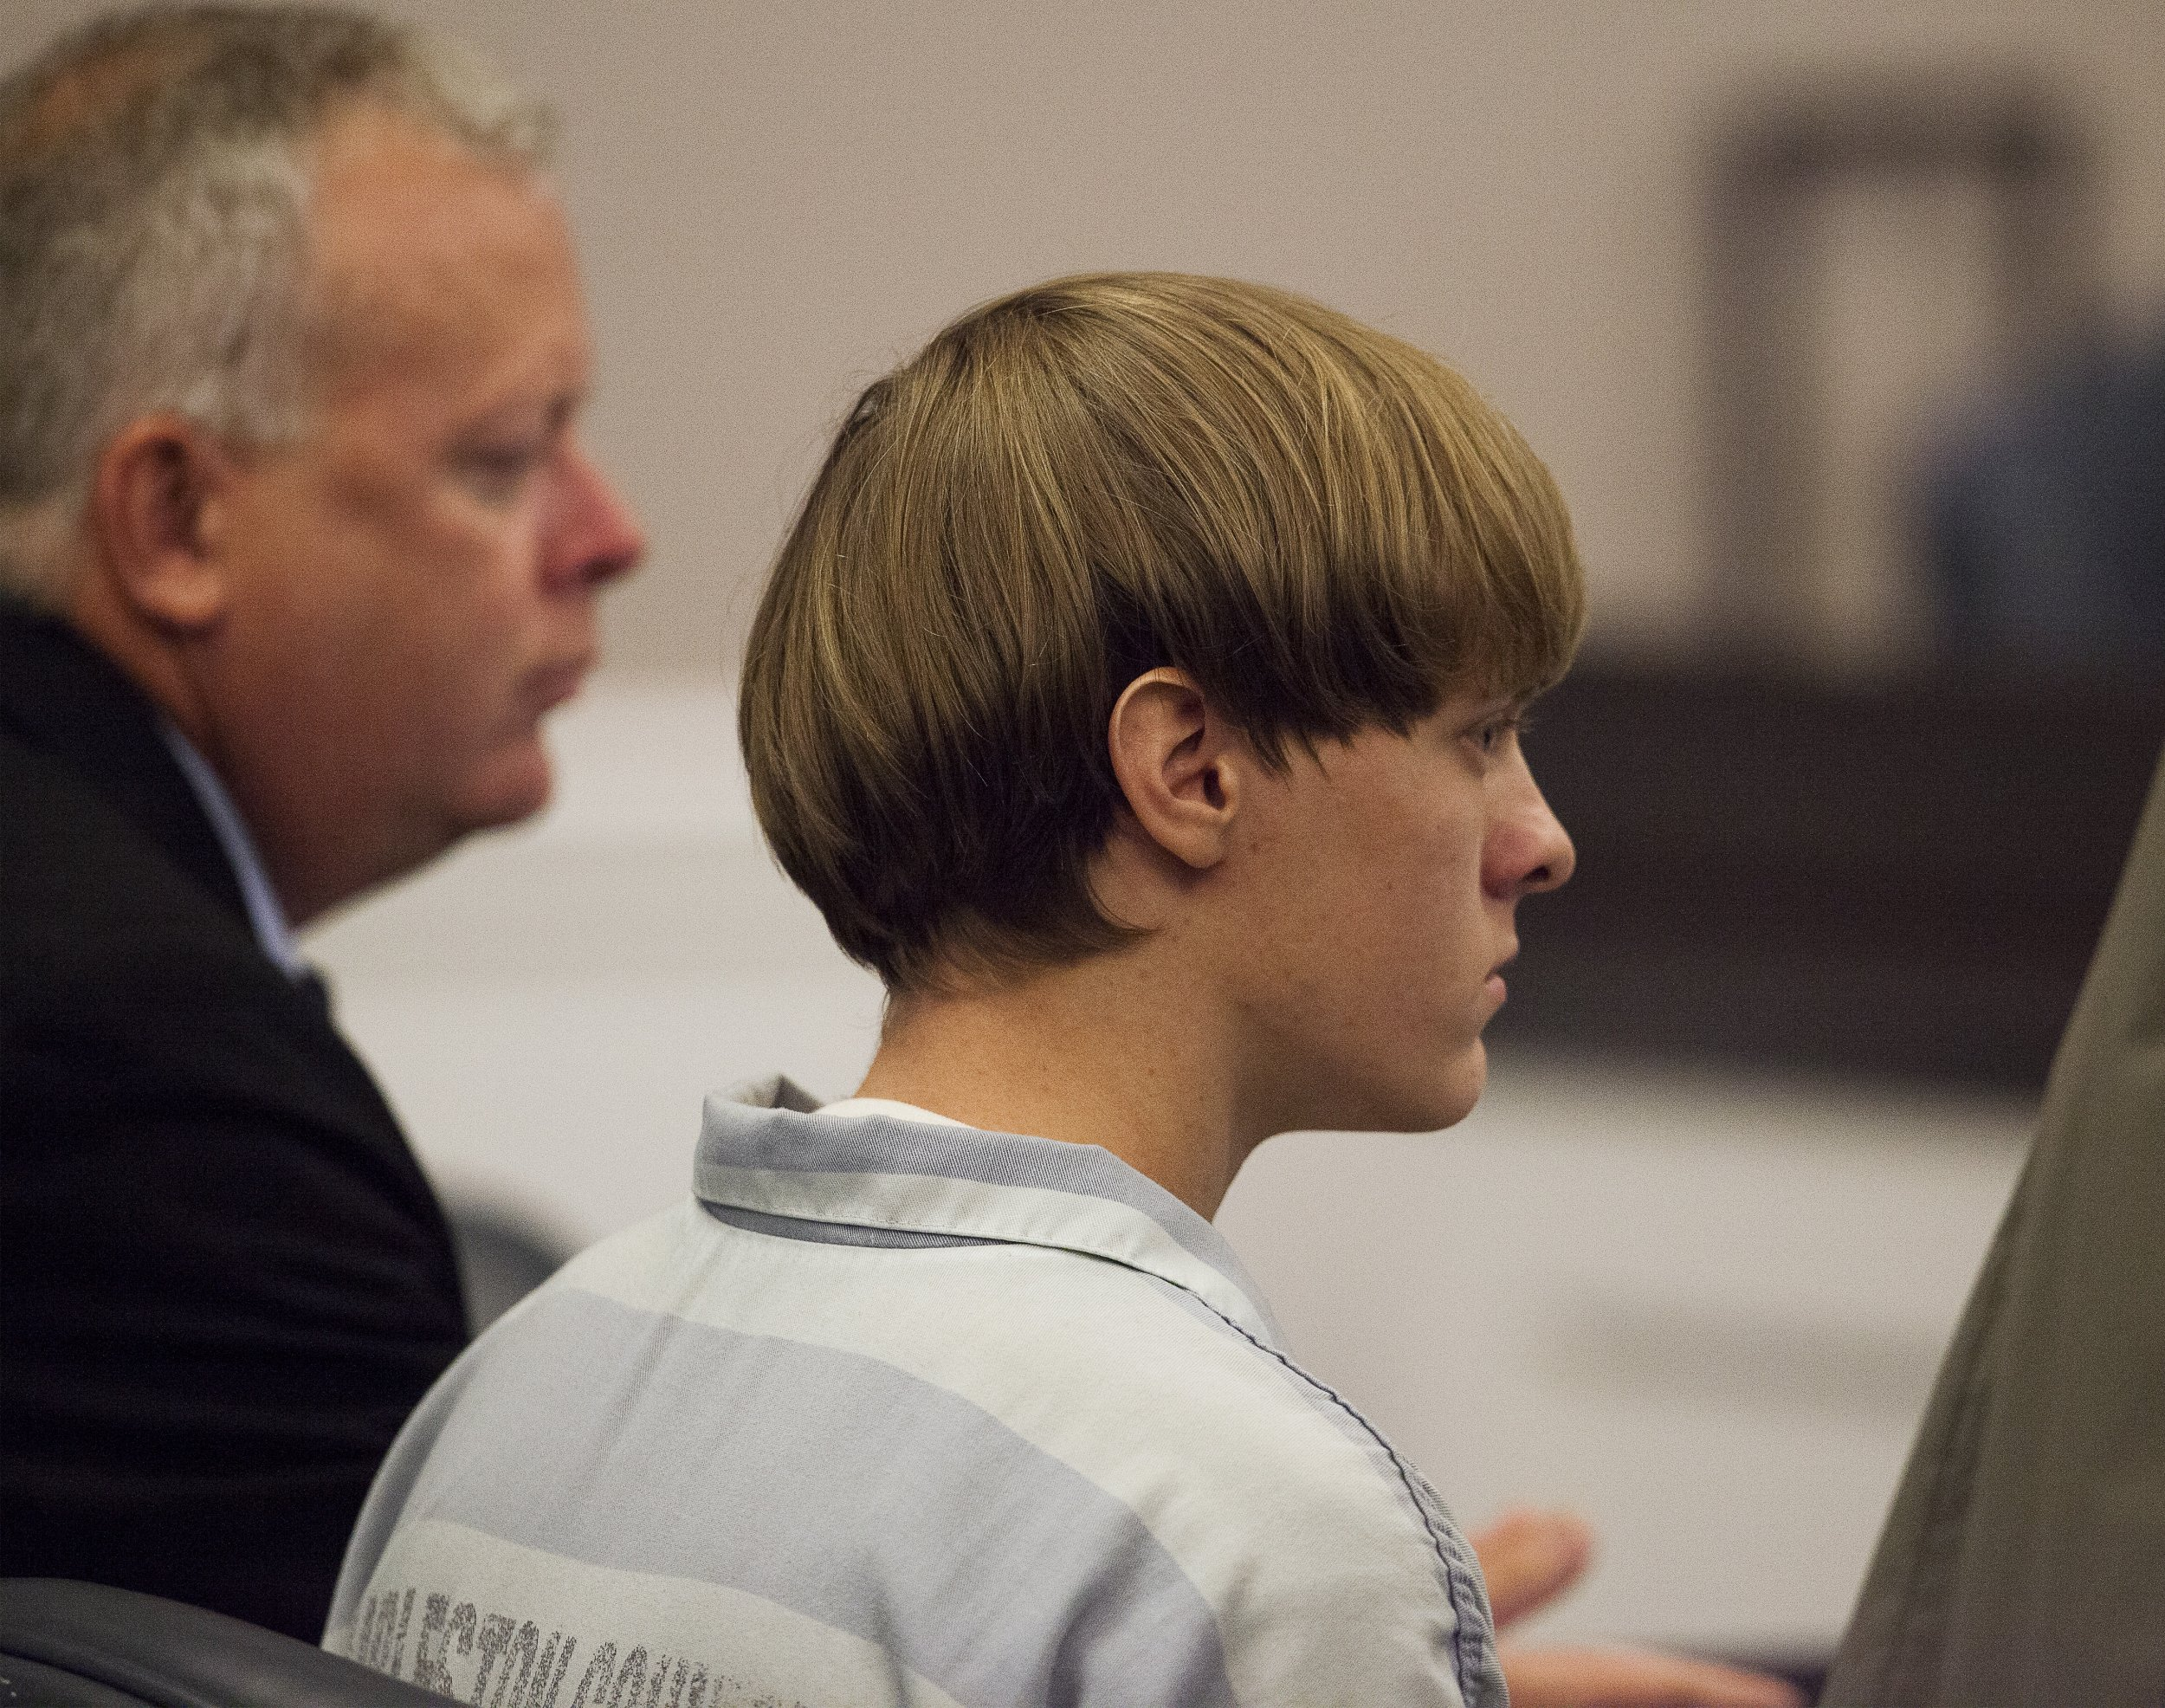 Charleston Shooting Suspect Dylann Roof Indicted on Federal Hate Crime